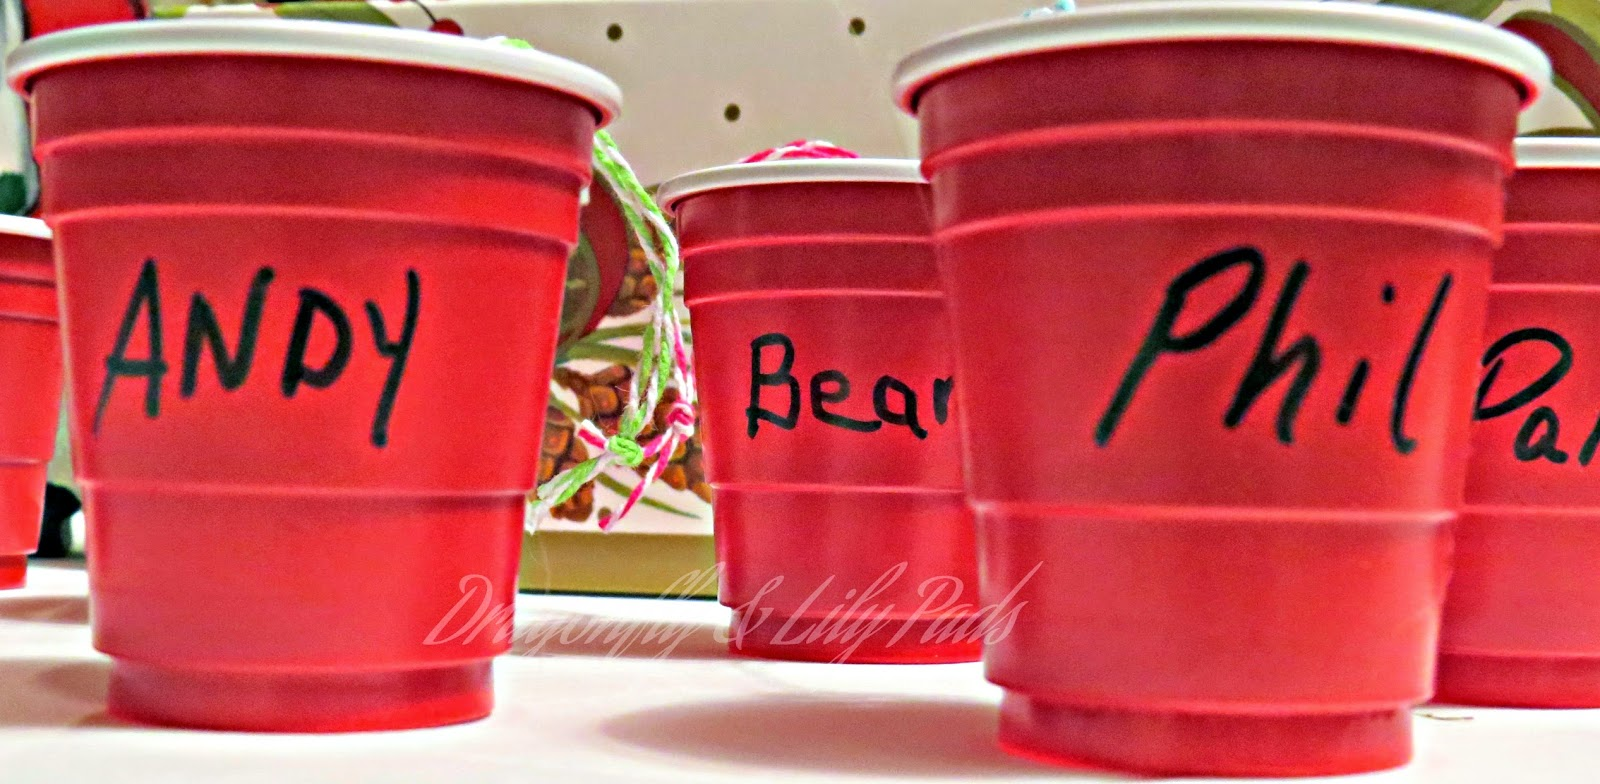 Names. Sharpie Marker, Christmas Ornament, Red Solo Cup Gift